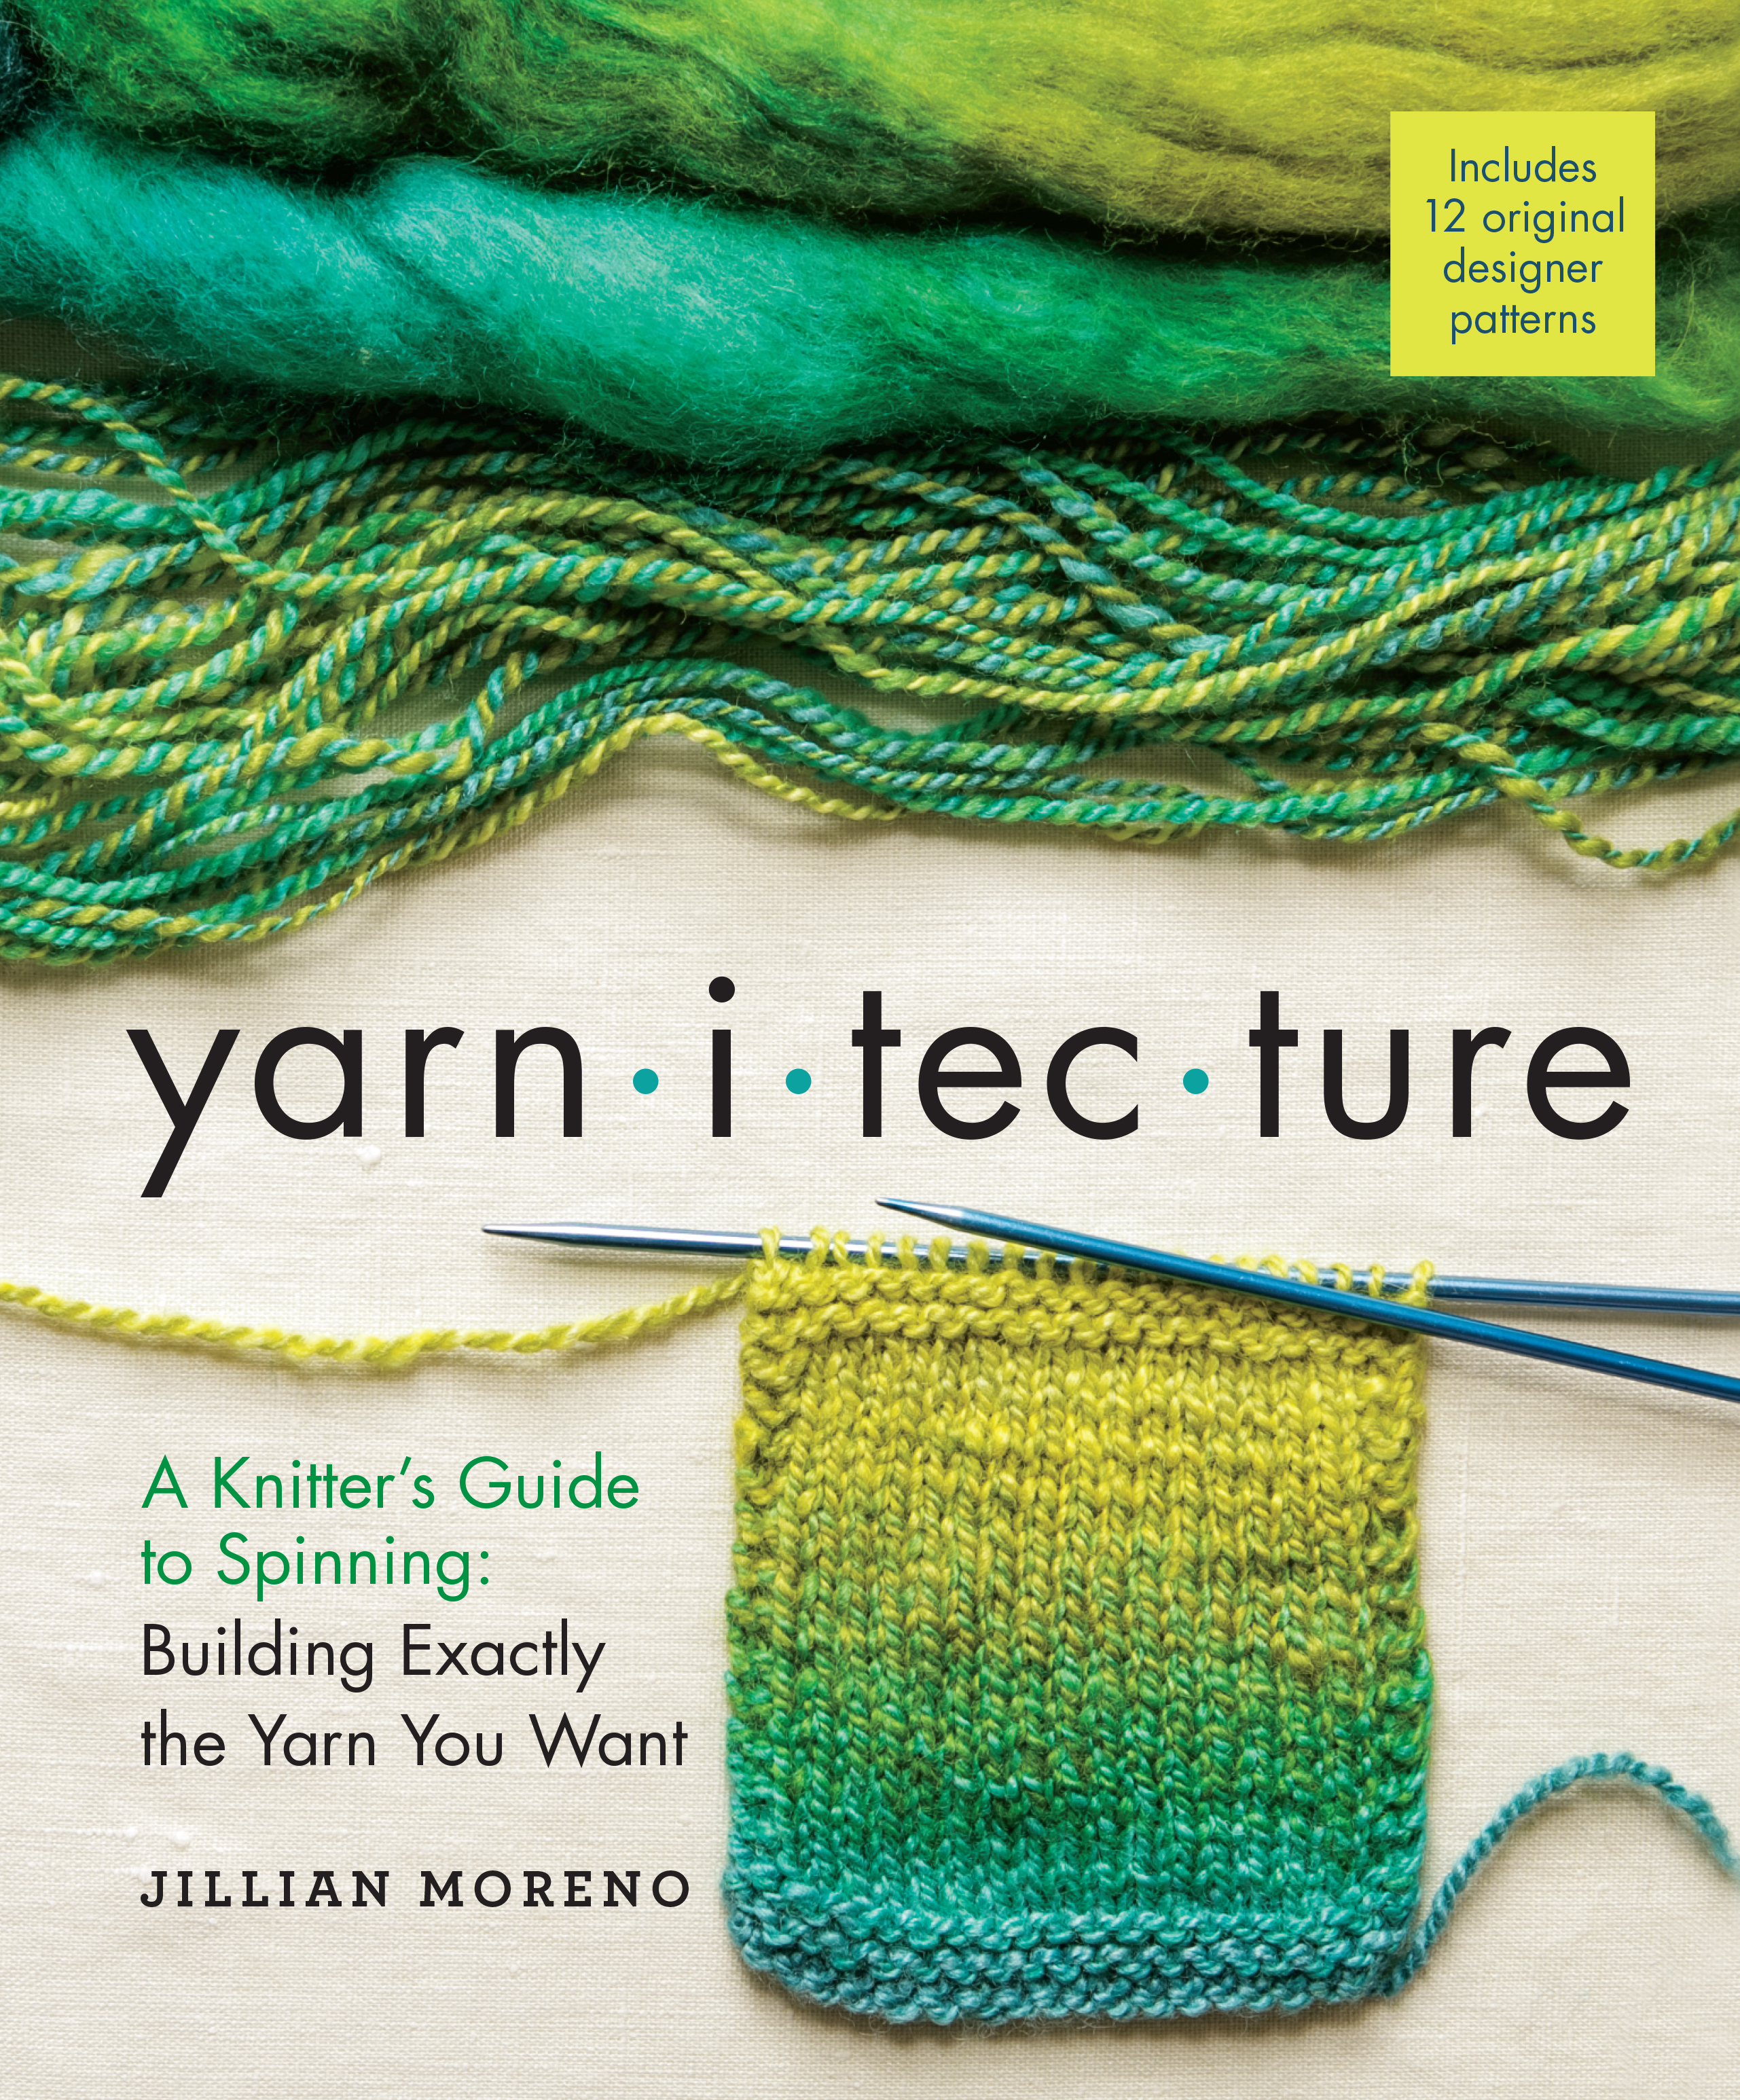 Yarnitecture A Knitter's Guide to Spinning: Building Exactly the Yarn You Want - Jillian Moreno